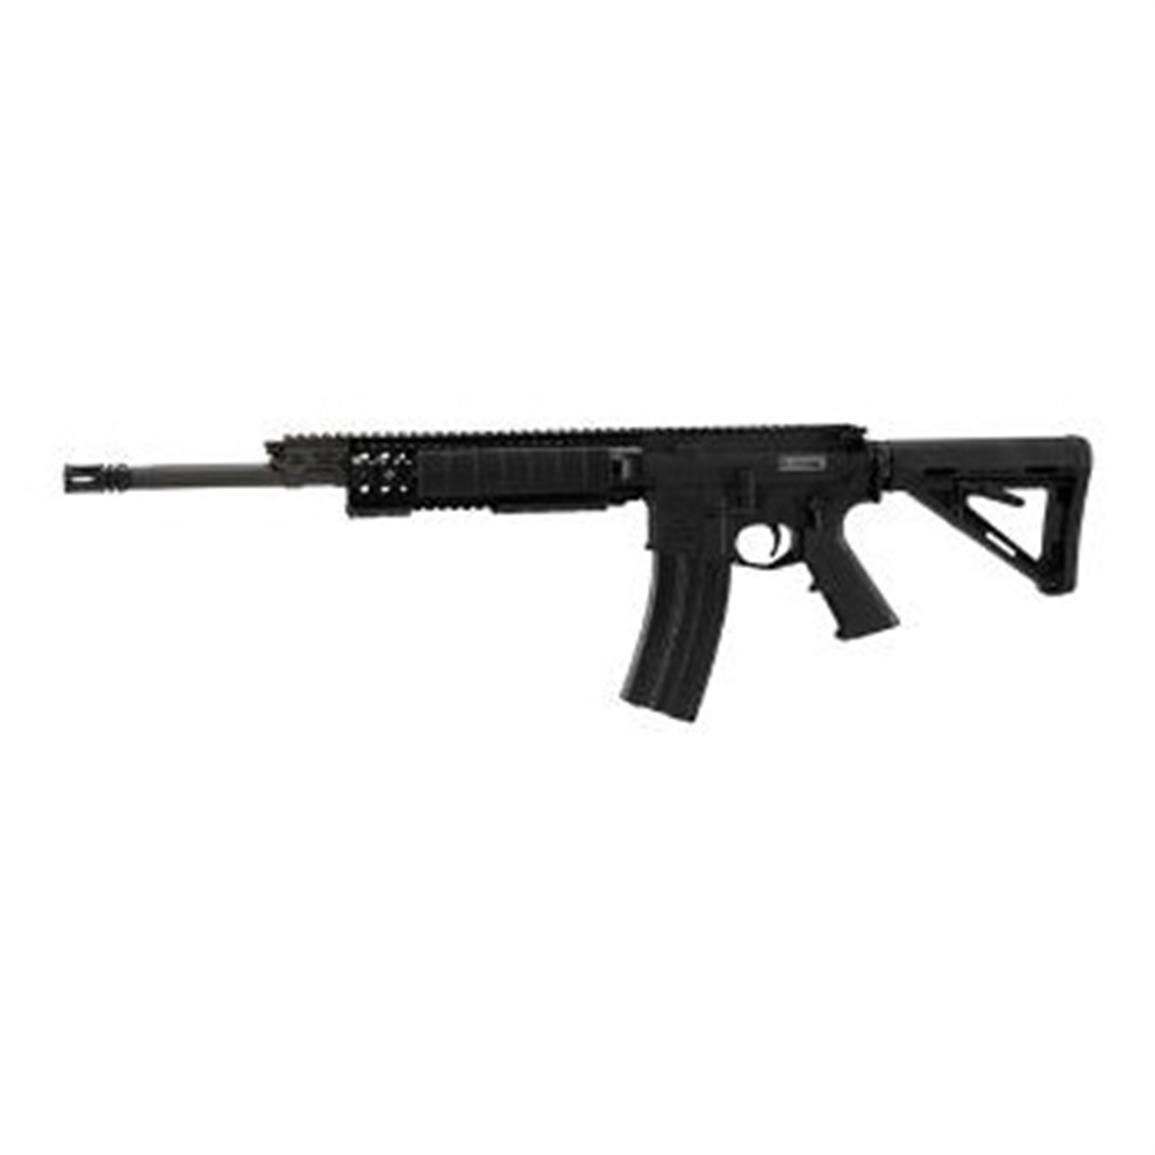 Barrett REC7-DI Gen II, Semi-automatic, .300 AAC Blackout, 15422, 816715016164, 16